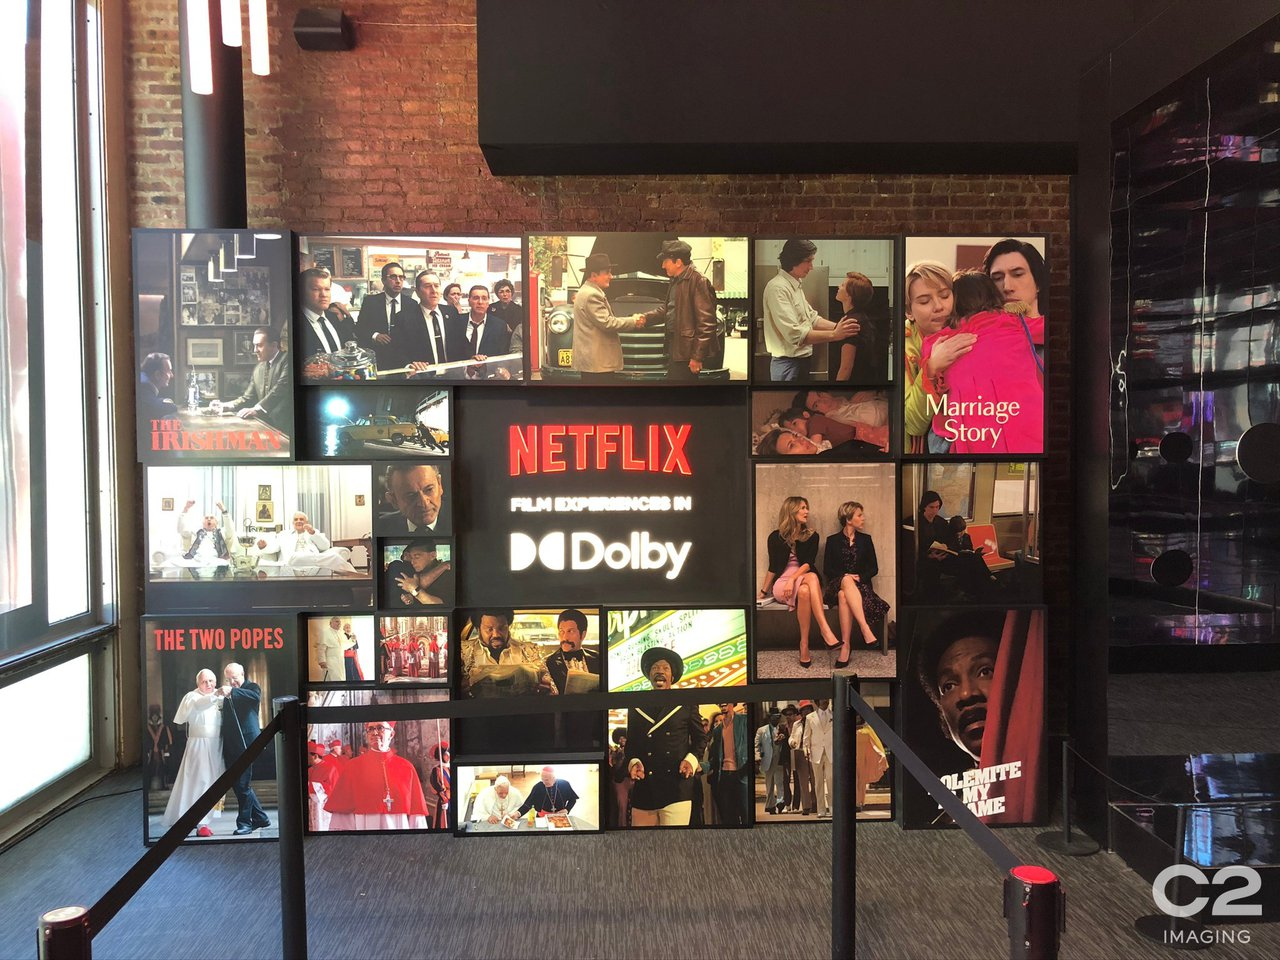 Dolby SoHo's Netflix Film Experiences photo IMG_5363.jpg